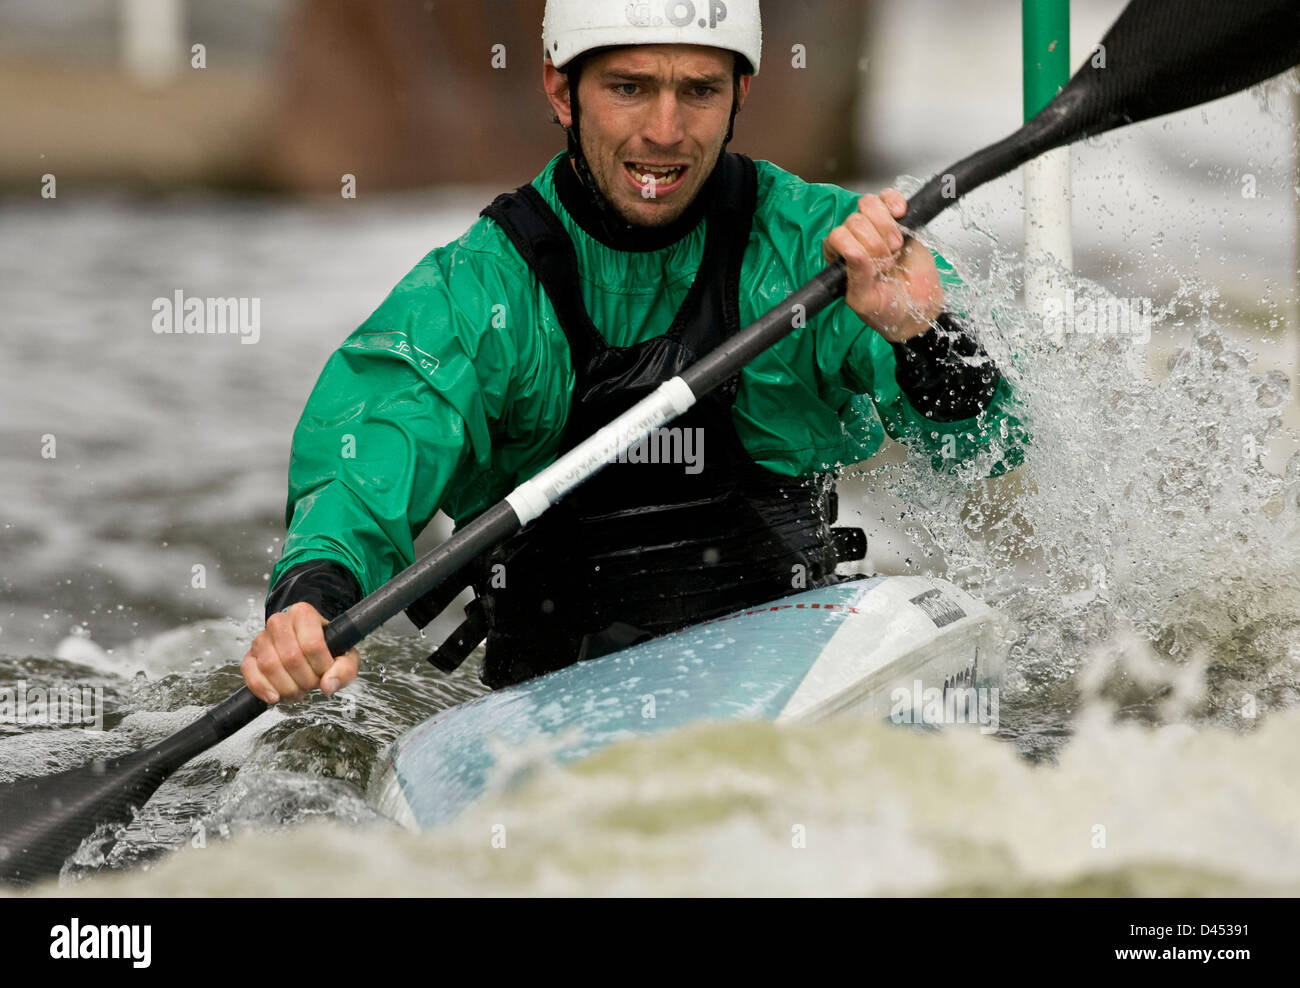 Man Paddling Canoe In Whitewater Rapids Competition